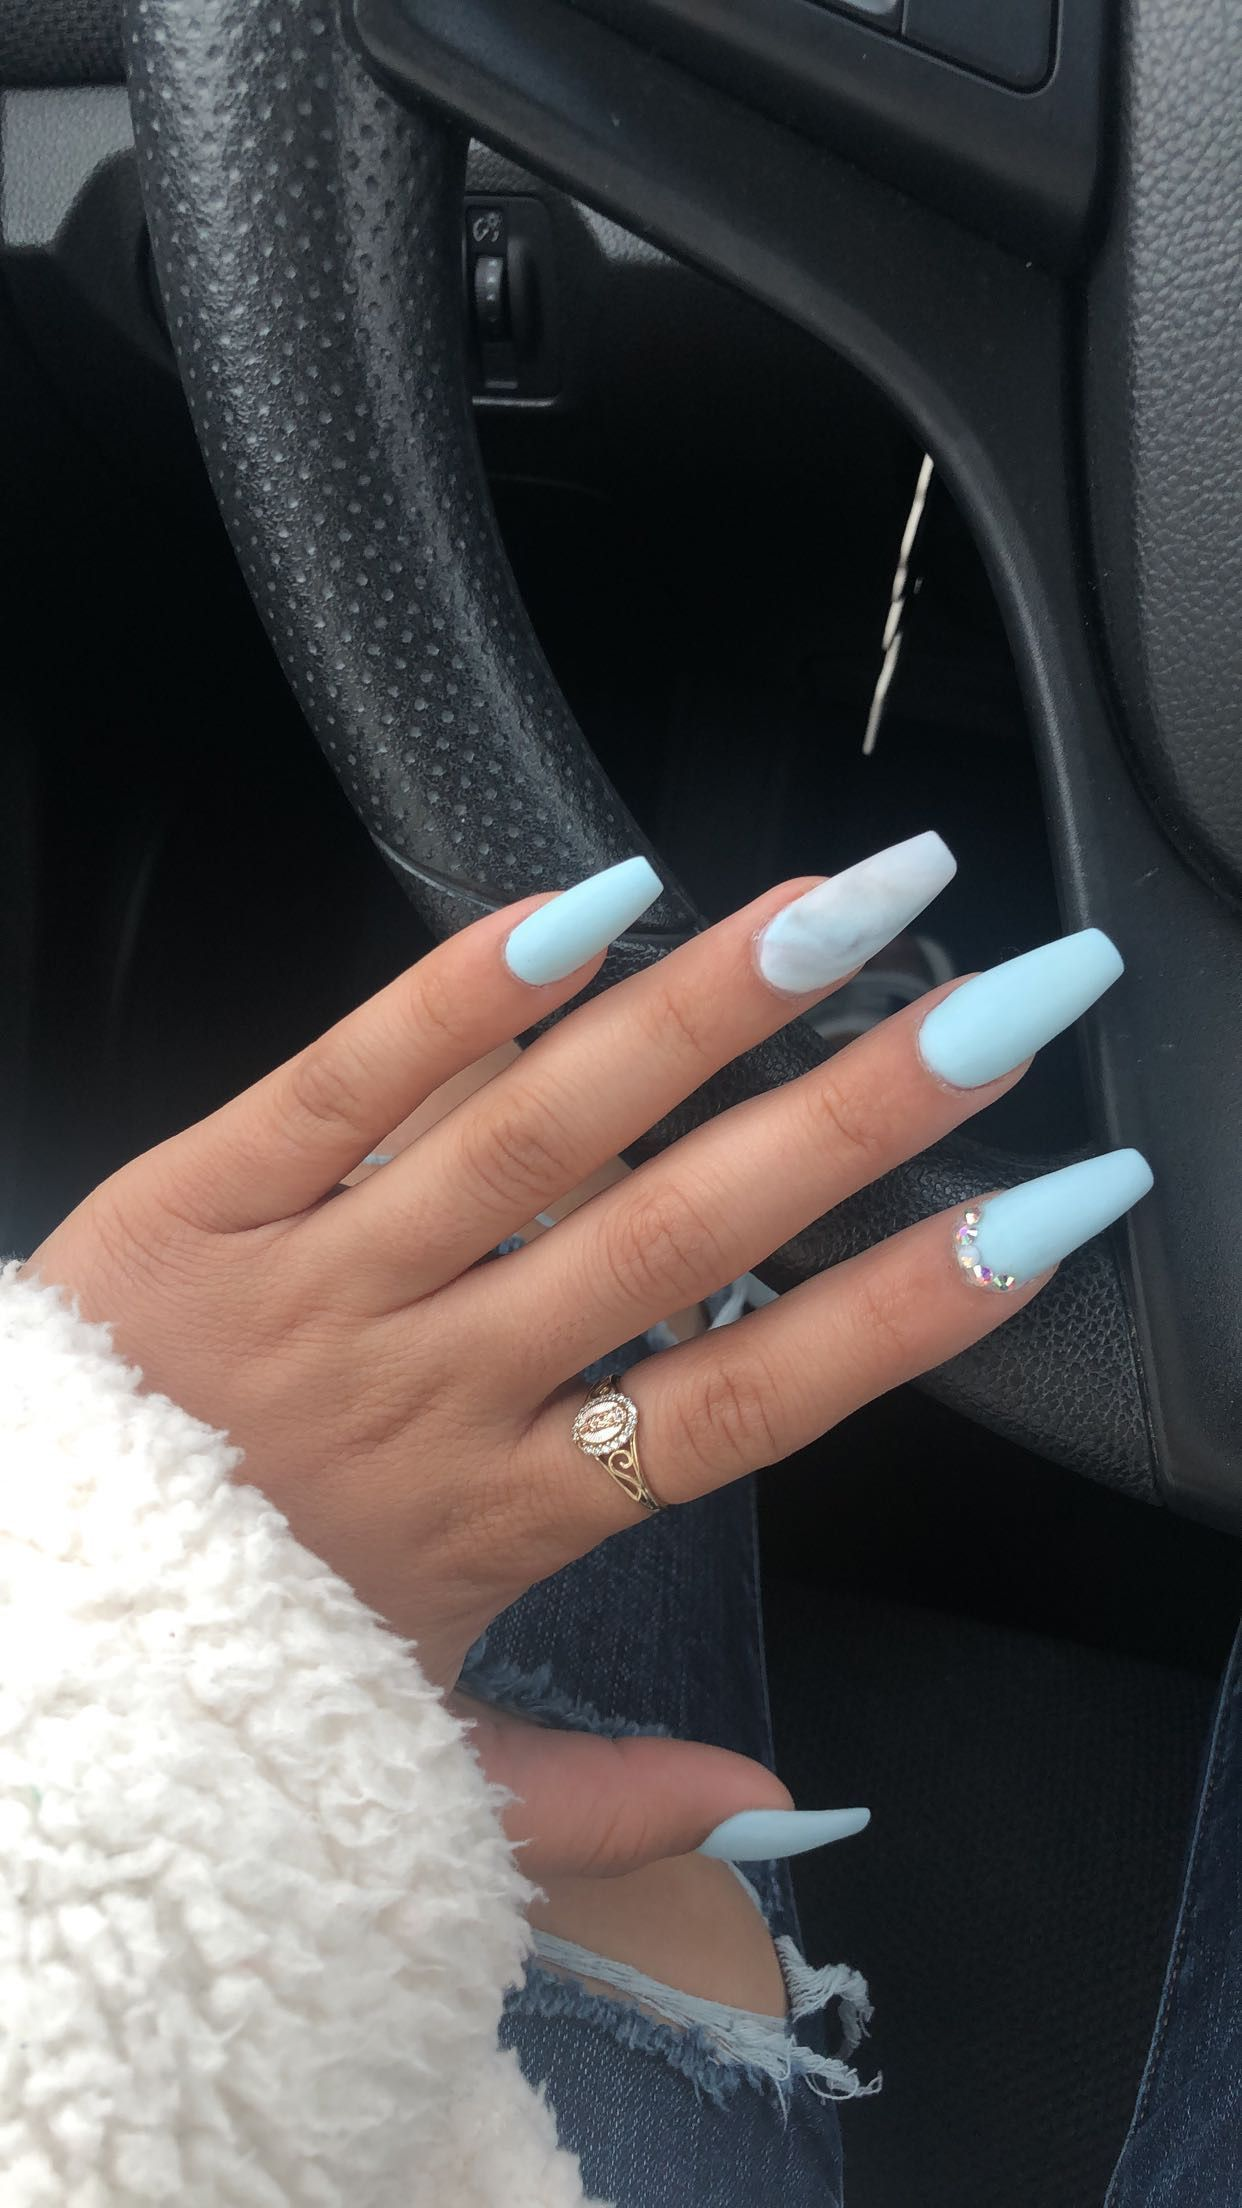 Winter Nails Acrylic Coffin Winter Nails Acrylic In 2020 Winter Nails Acrylic Blue Acrylic Nails Blue Coffin Nails